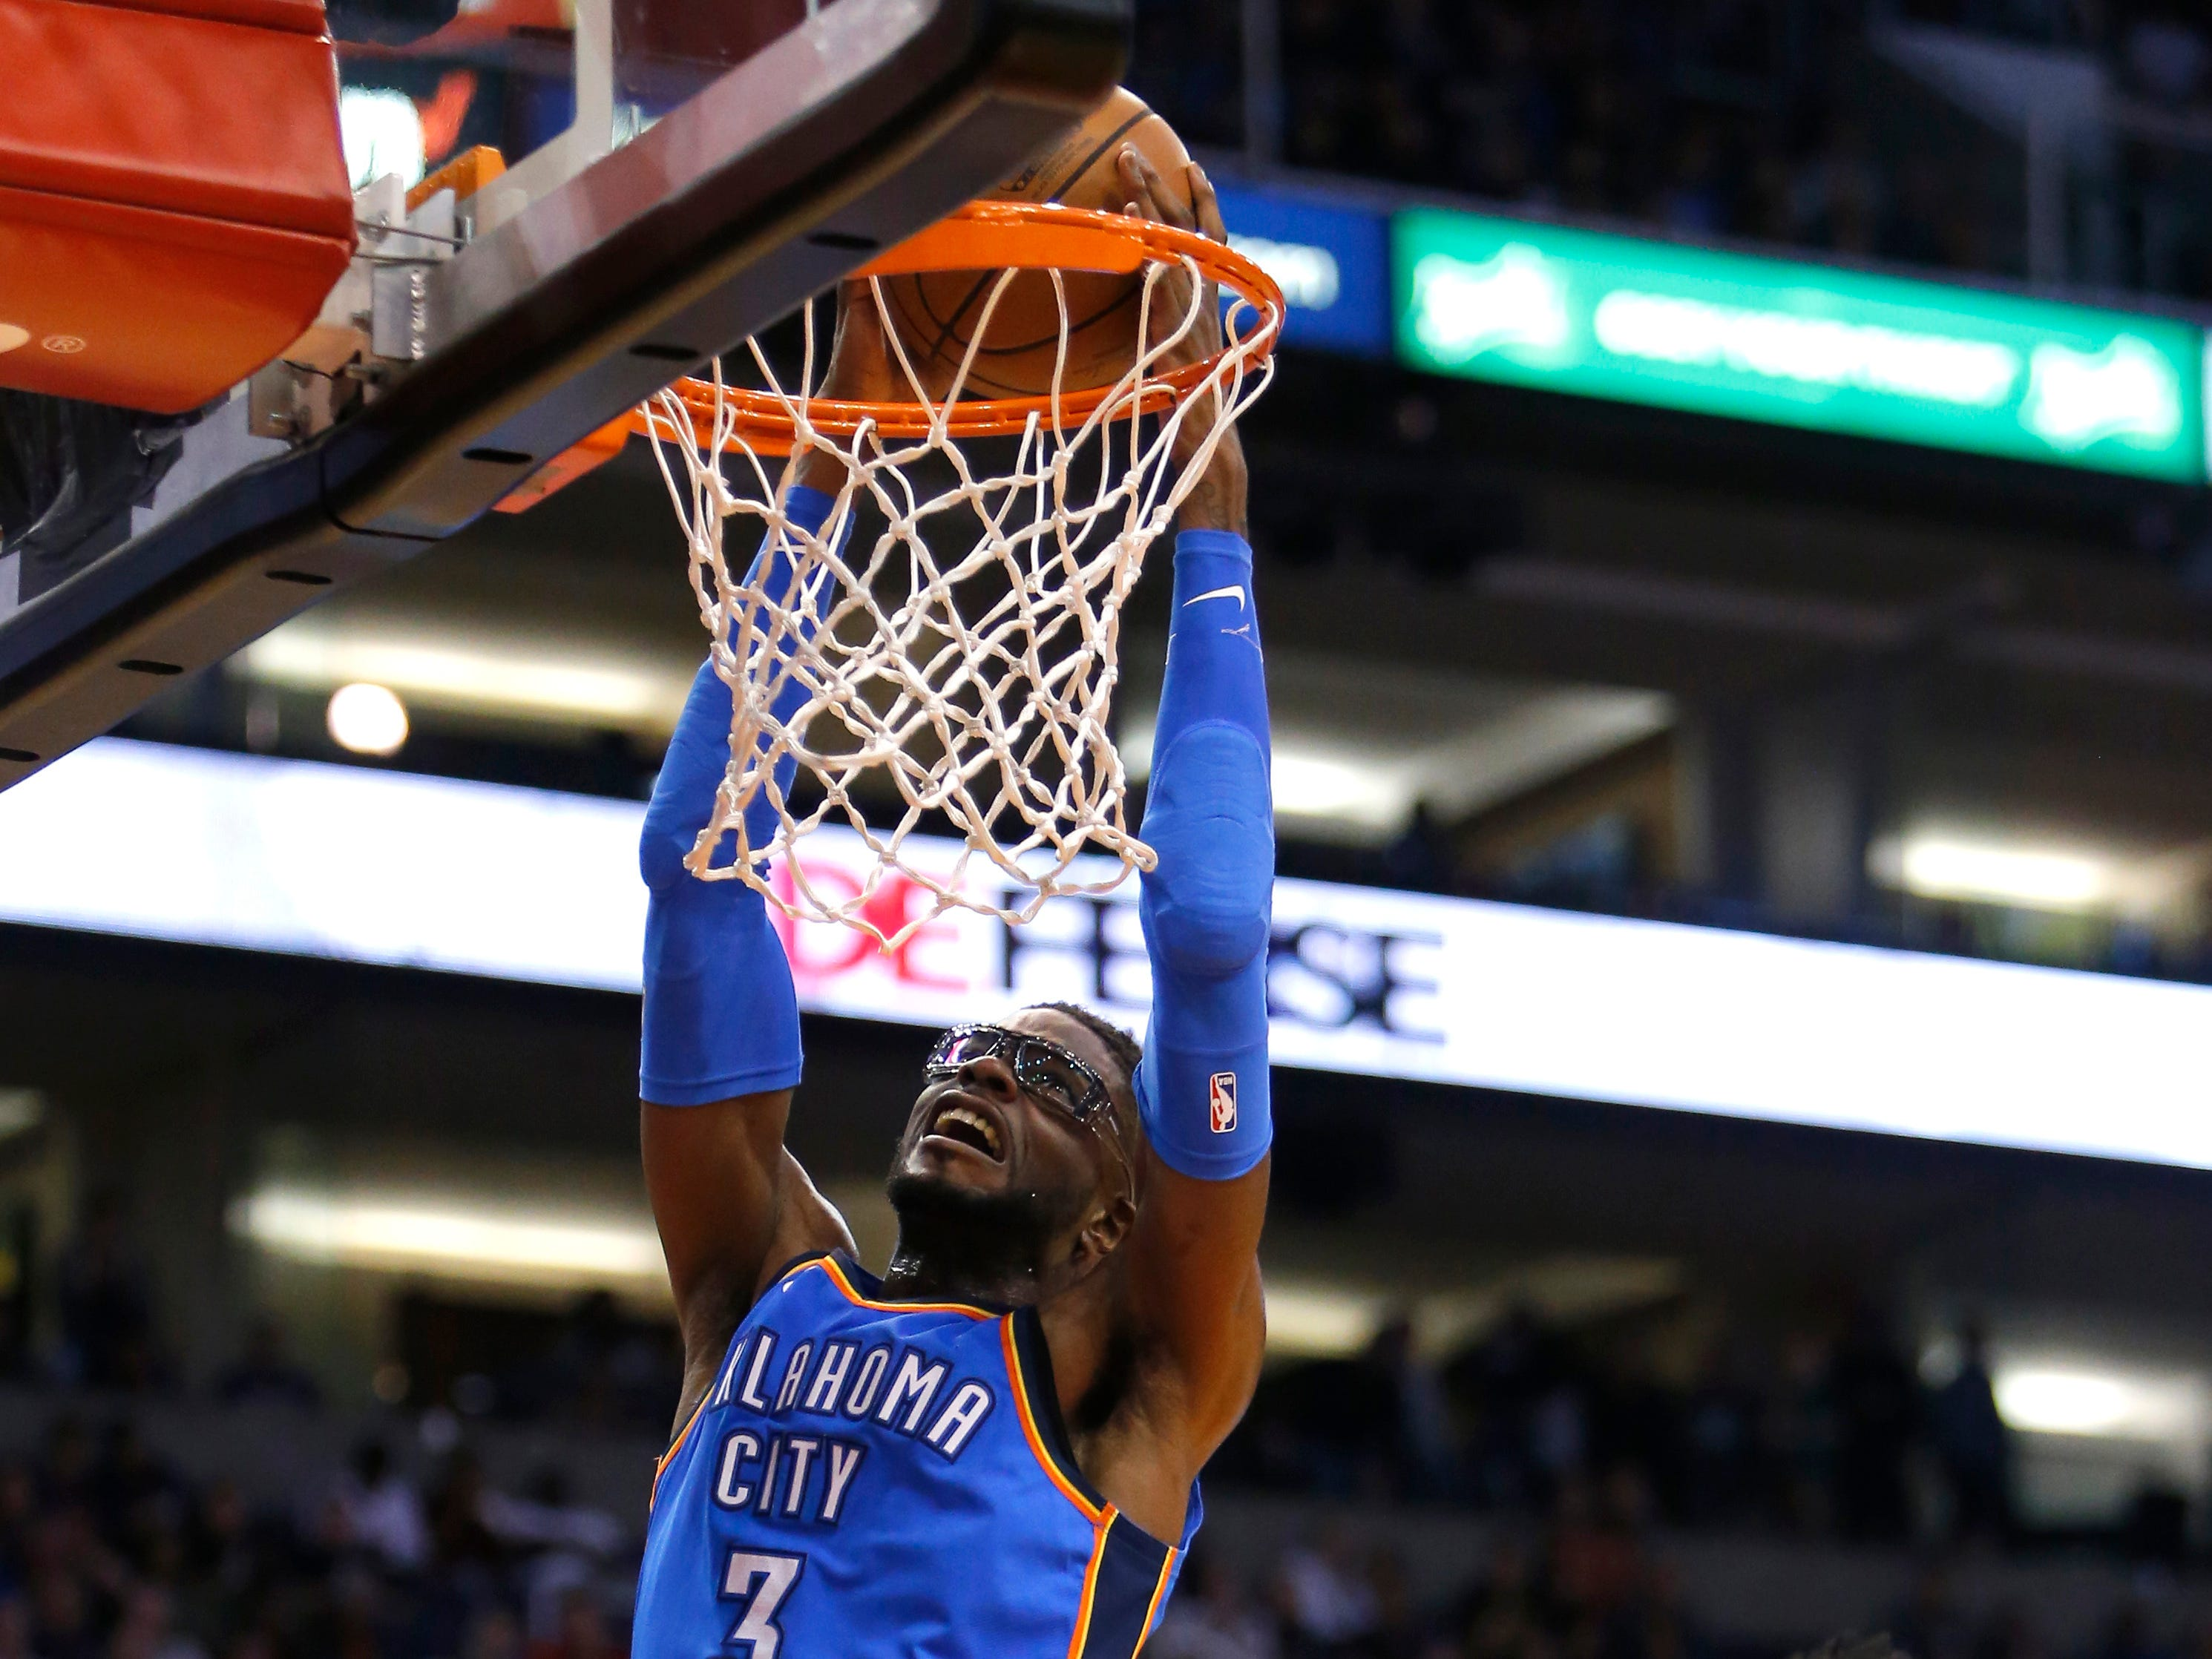 Oklahoma City Thunder forward Nerlens Noel (3) dunks against the Phoenix Suns during the second half of an NBA basketball game Saturday, Nov. 17, 2018, in Phoenix. Oklahoma City won 110-100. (AP Photo/Rick Scuteri)